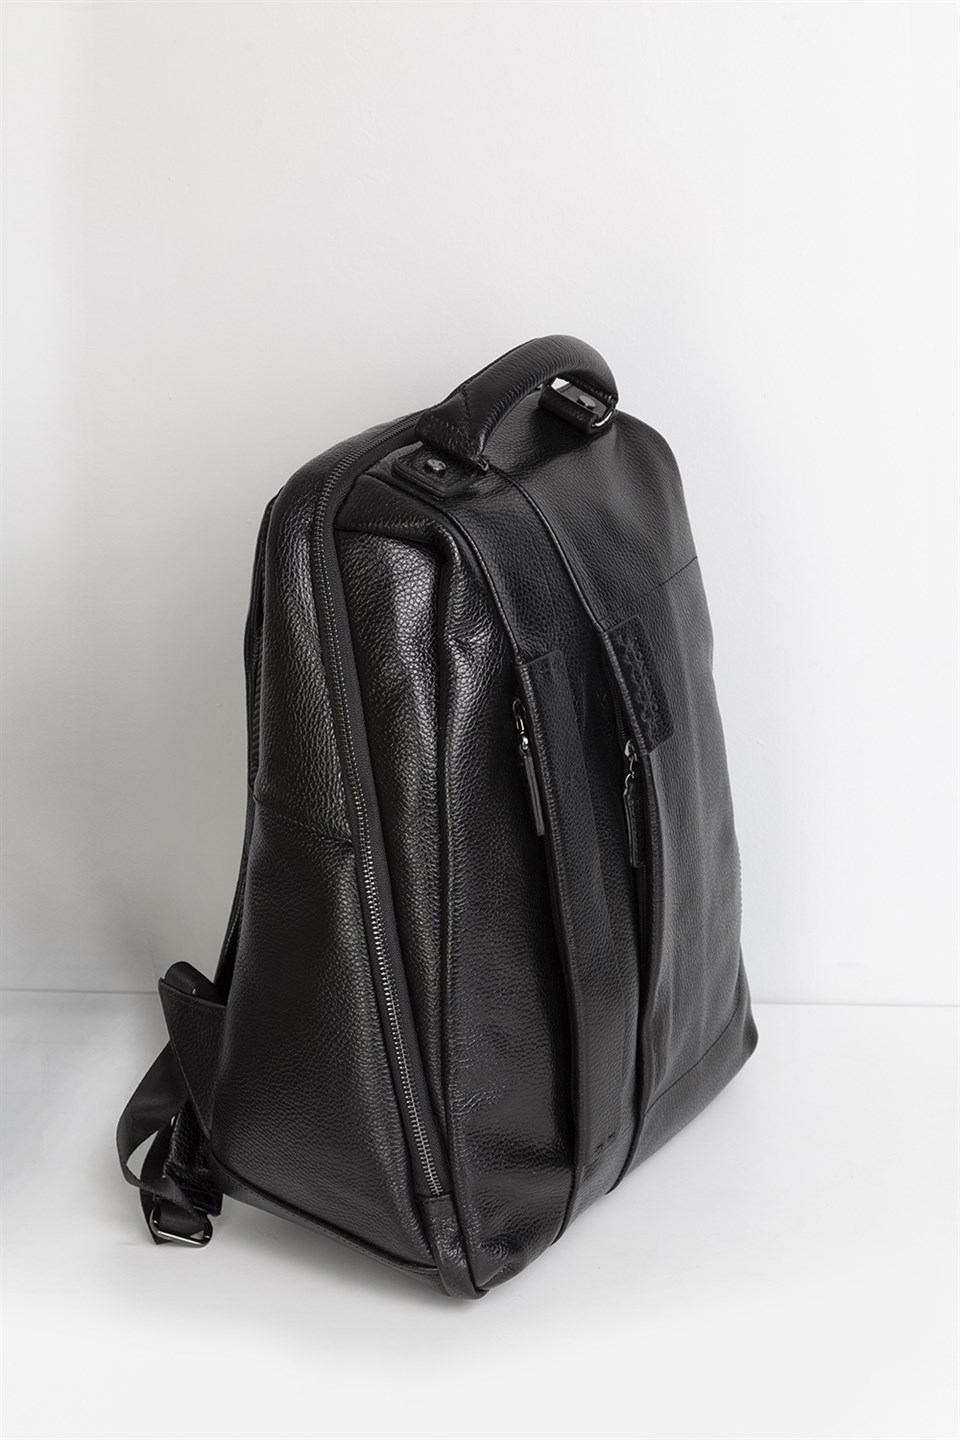 3701c7dd7ceb7 Black Leather Mens Backpack – Patmo Technologies Limited